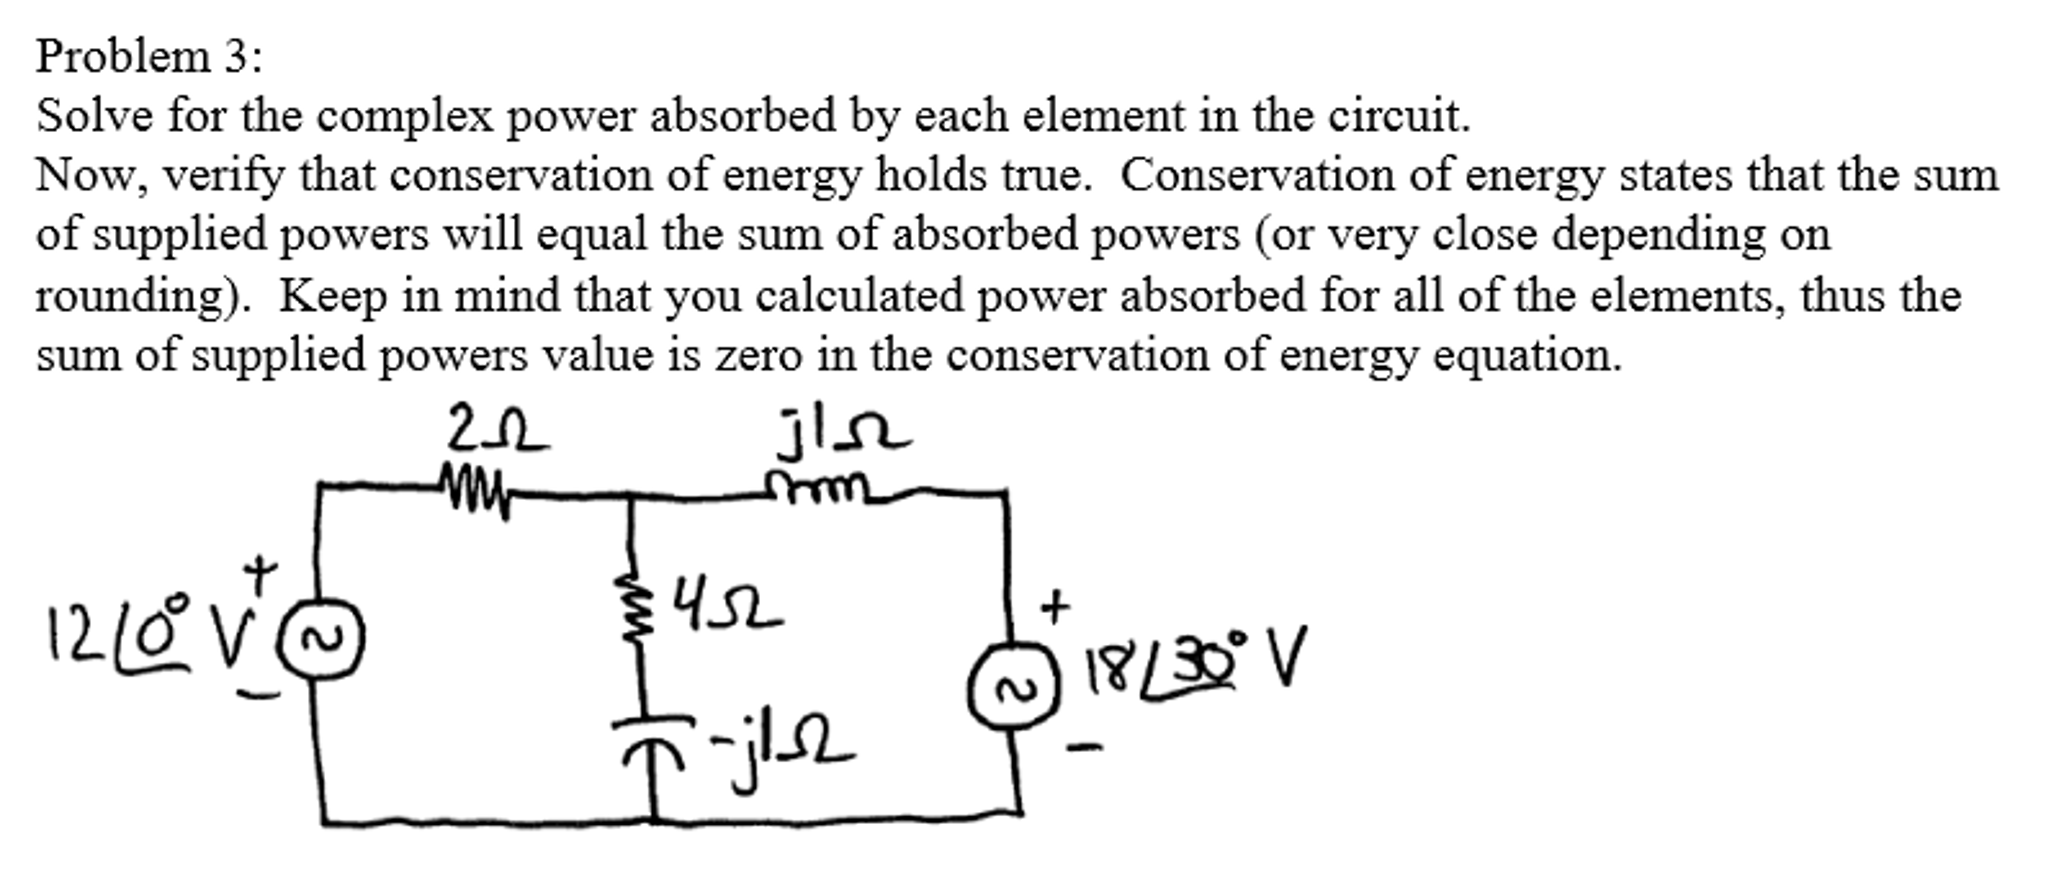 Conservation Of Energy In Circuit Wiring Diagram Electricity Simple Dc Model Solved Solve For The Complex Power Absorbed By Each Eleme Rh Chegg Com Series Lc